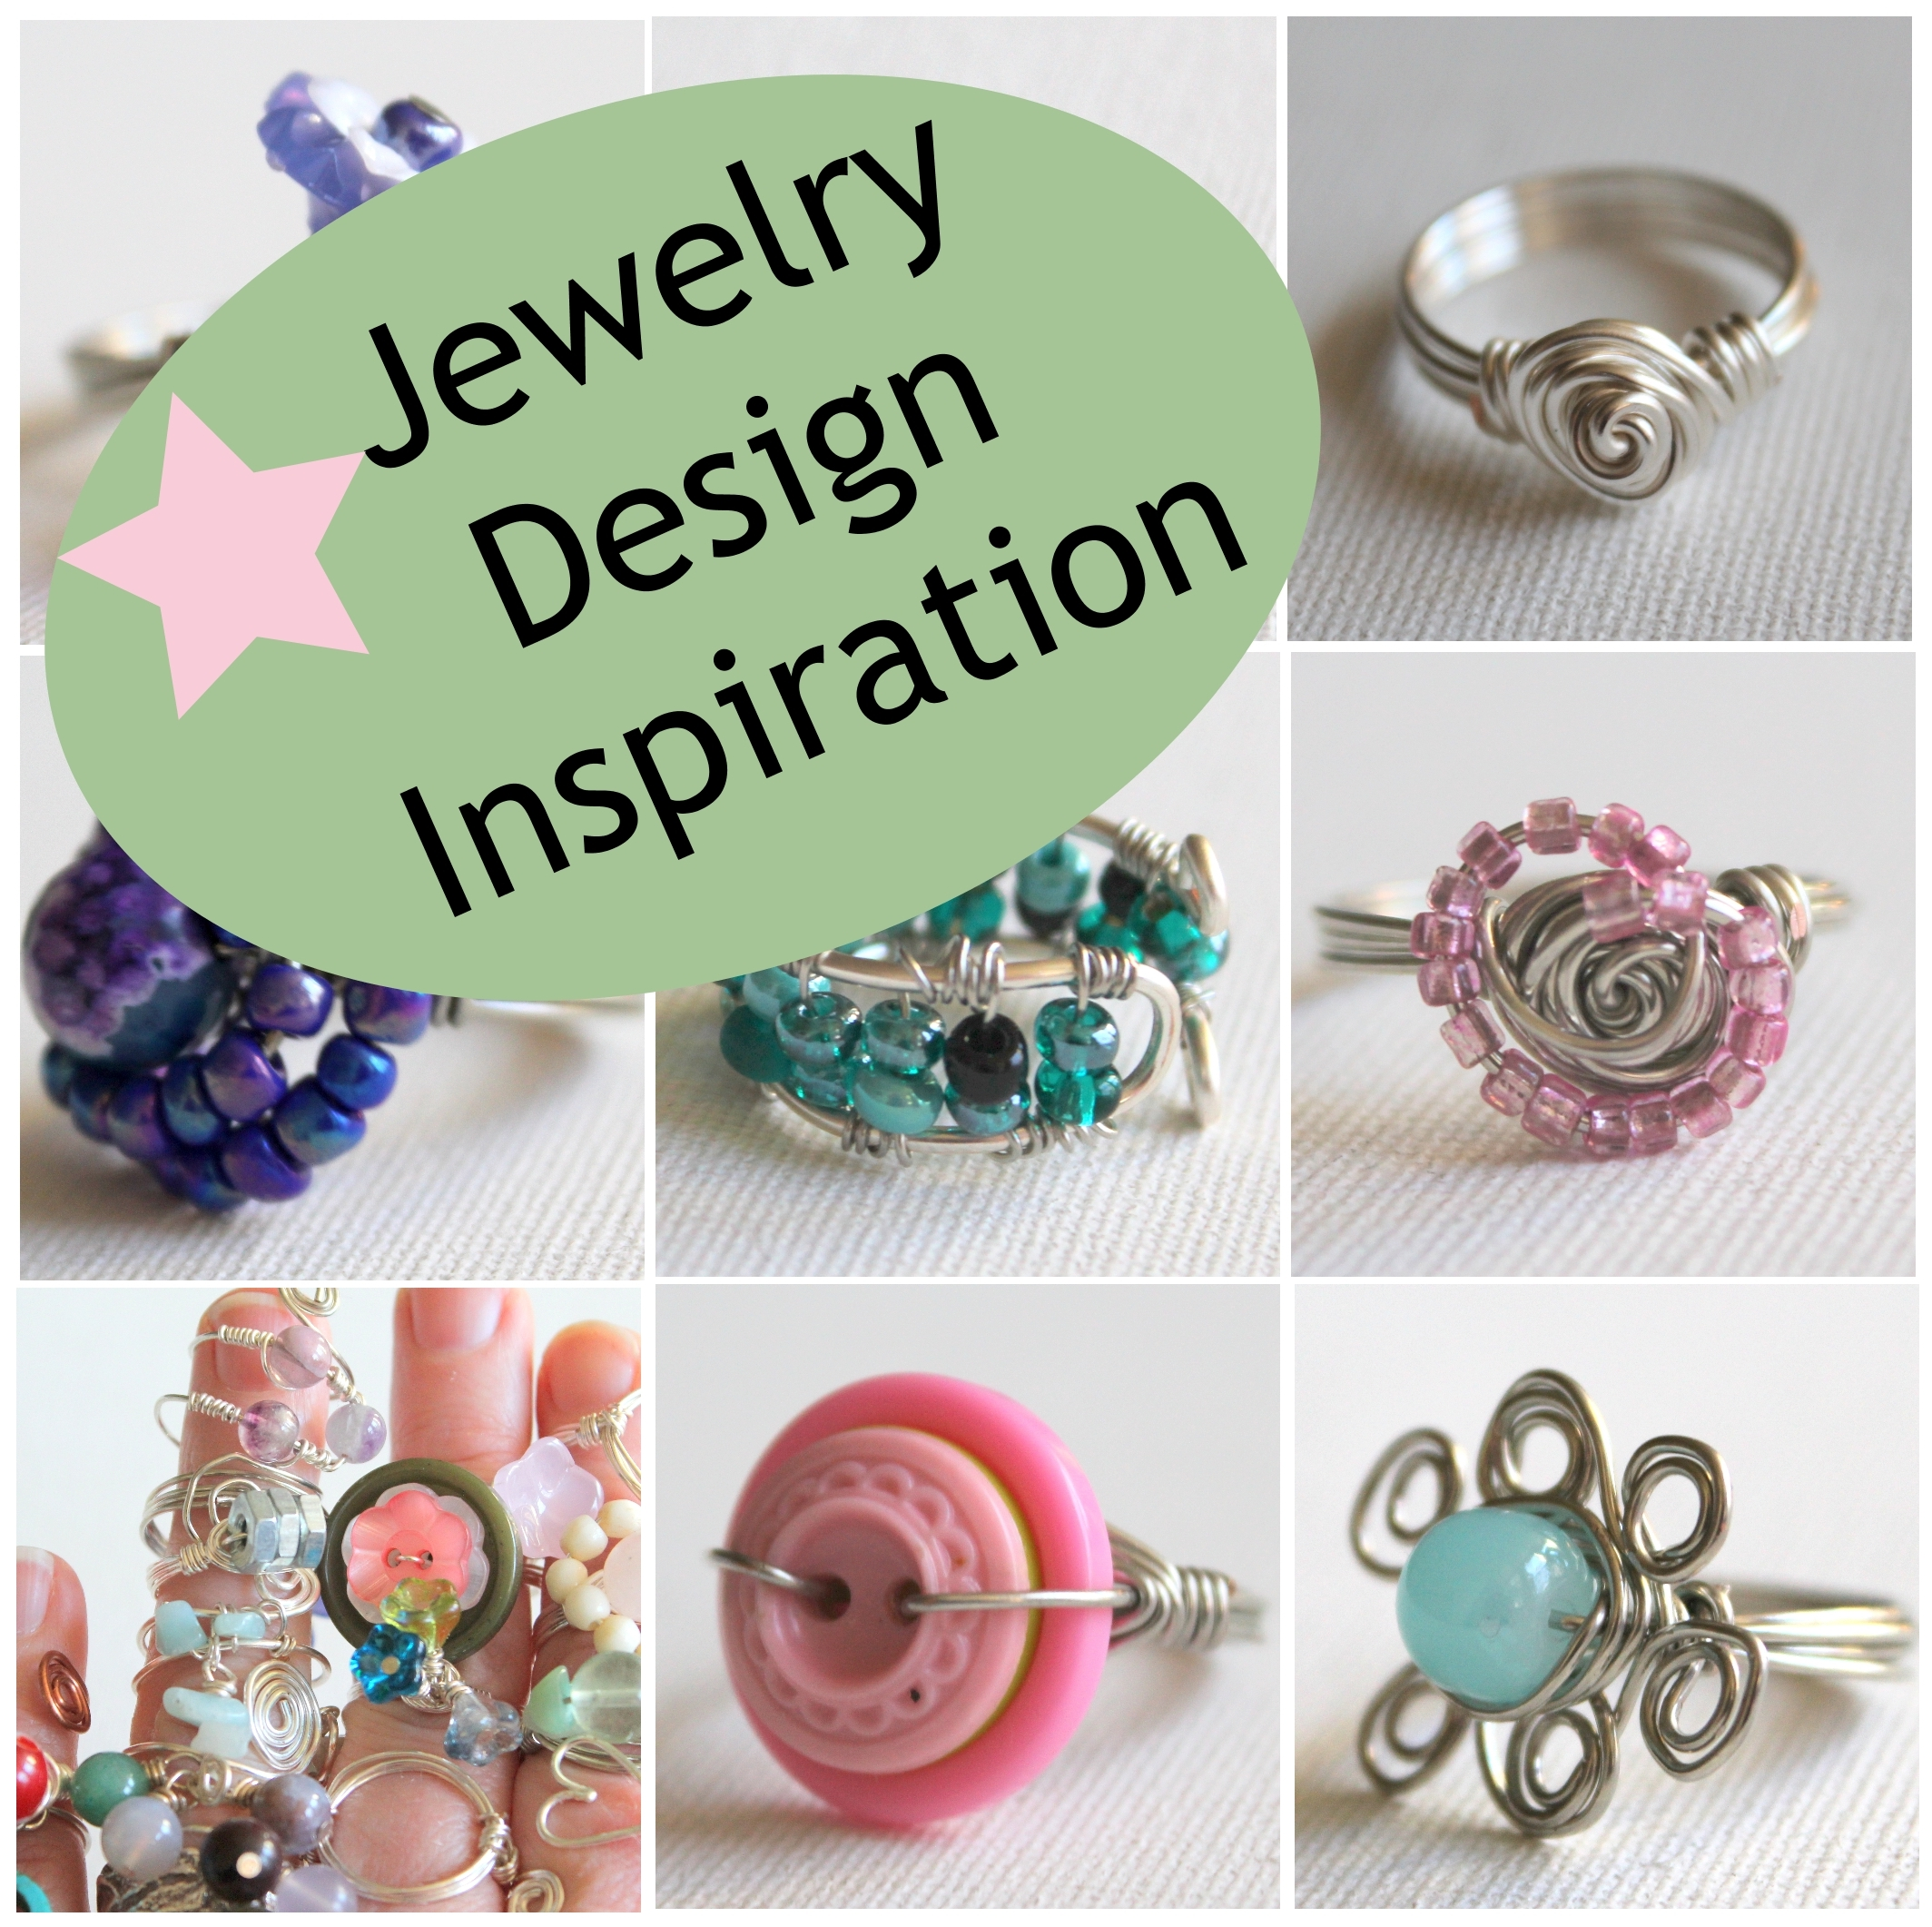 Inspired Jewelry Designs Jewelry Design Inspiration